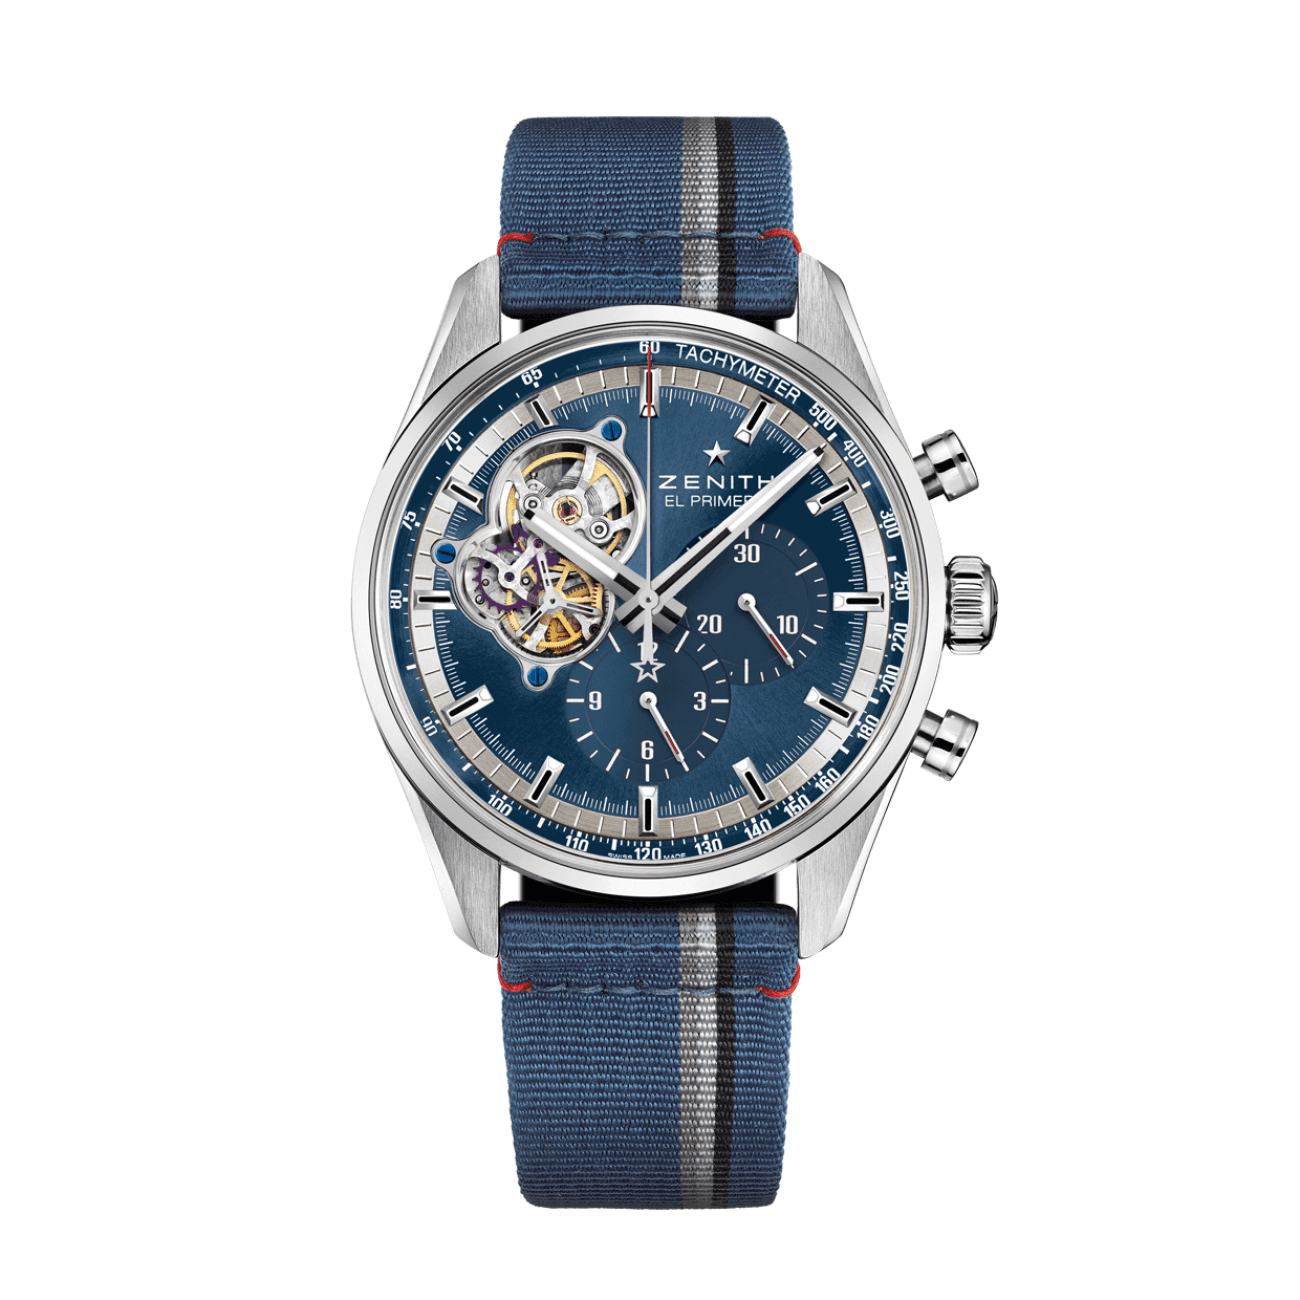 Zenith Watches - 03.20416.4061/51.C802 Chronomaster El Primero Open | Manfredi Jewels